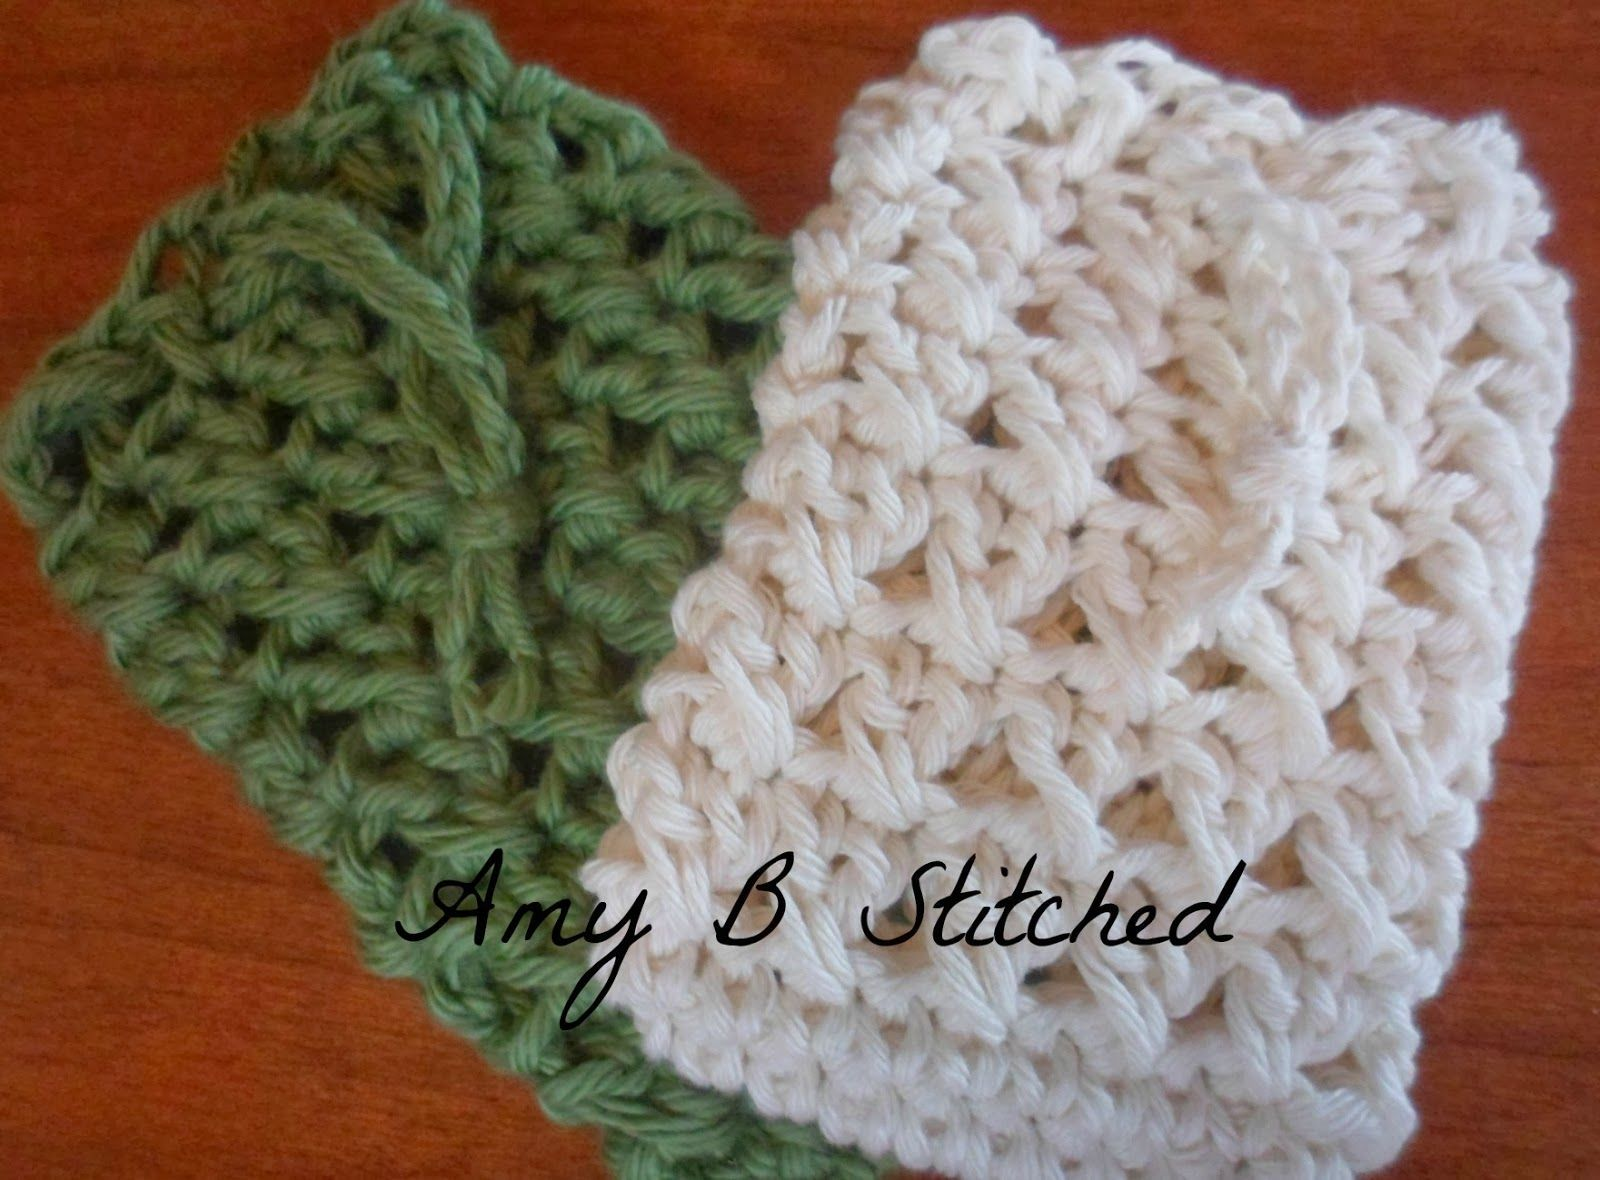 A Stitch At A Time for Amy B Stitched: Cross Stitch Soap Saver Pouch ...